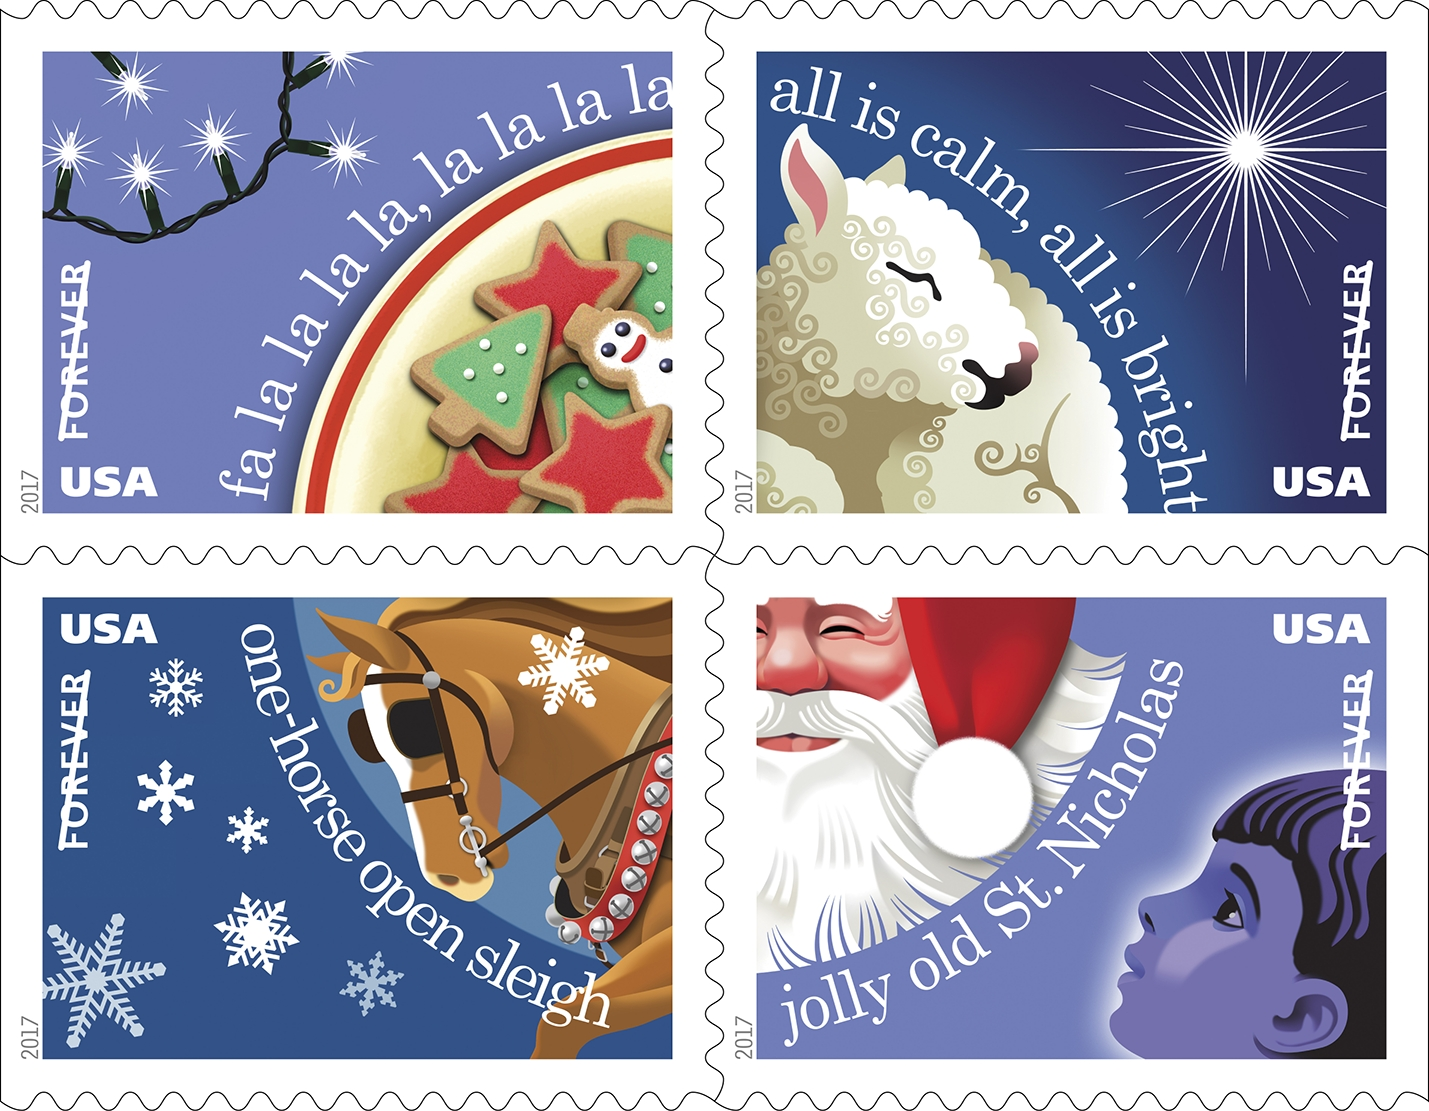 USPS New Stamp Issues 2017 on StampNewsNow.com